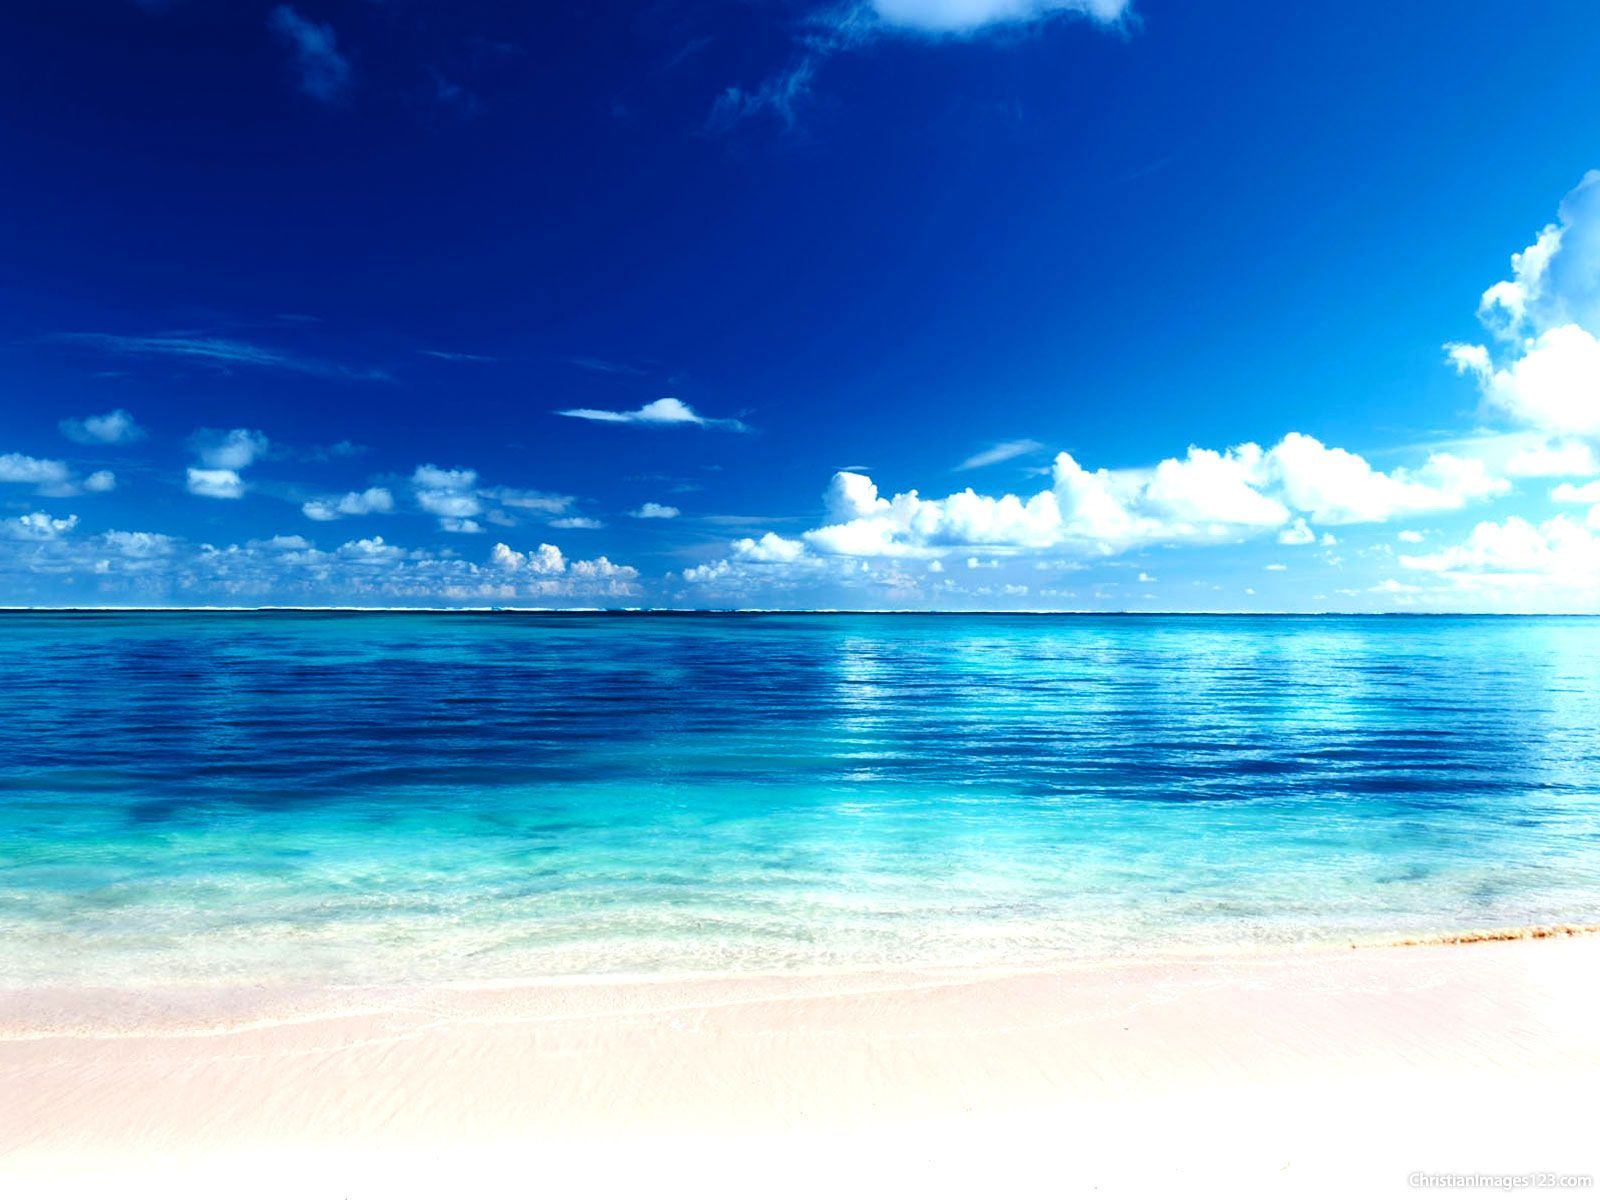 awesome beach background for powerpoint | powerpoint backgrounds